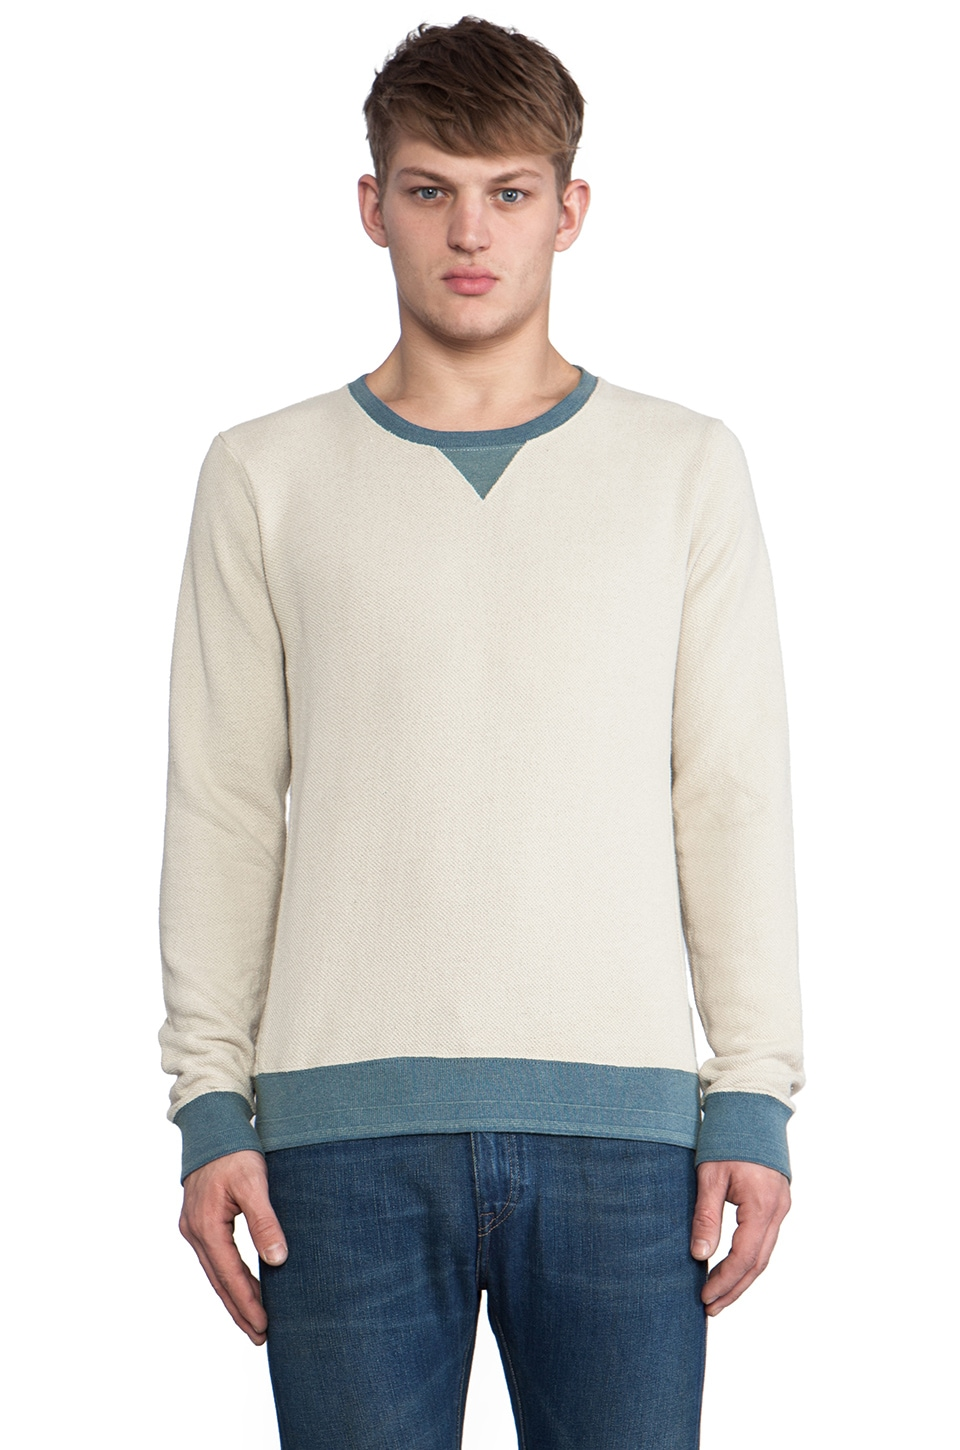 Scotch & Soda Home Alone Raglan in Ecru